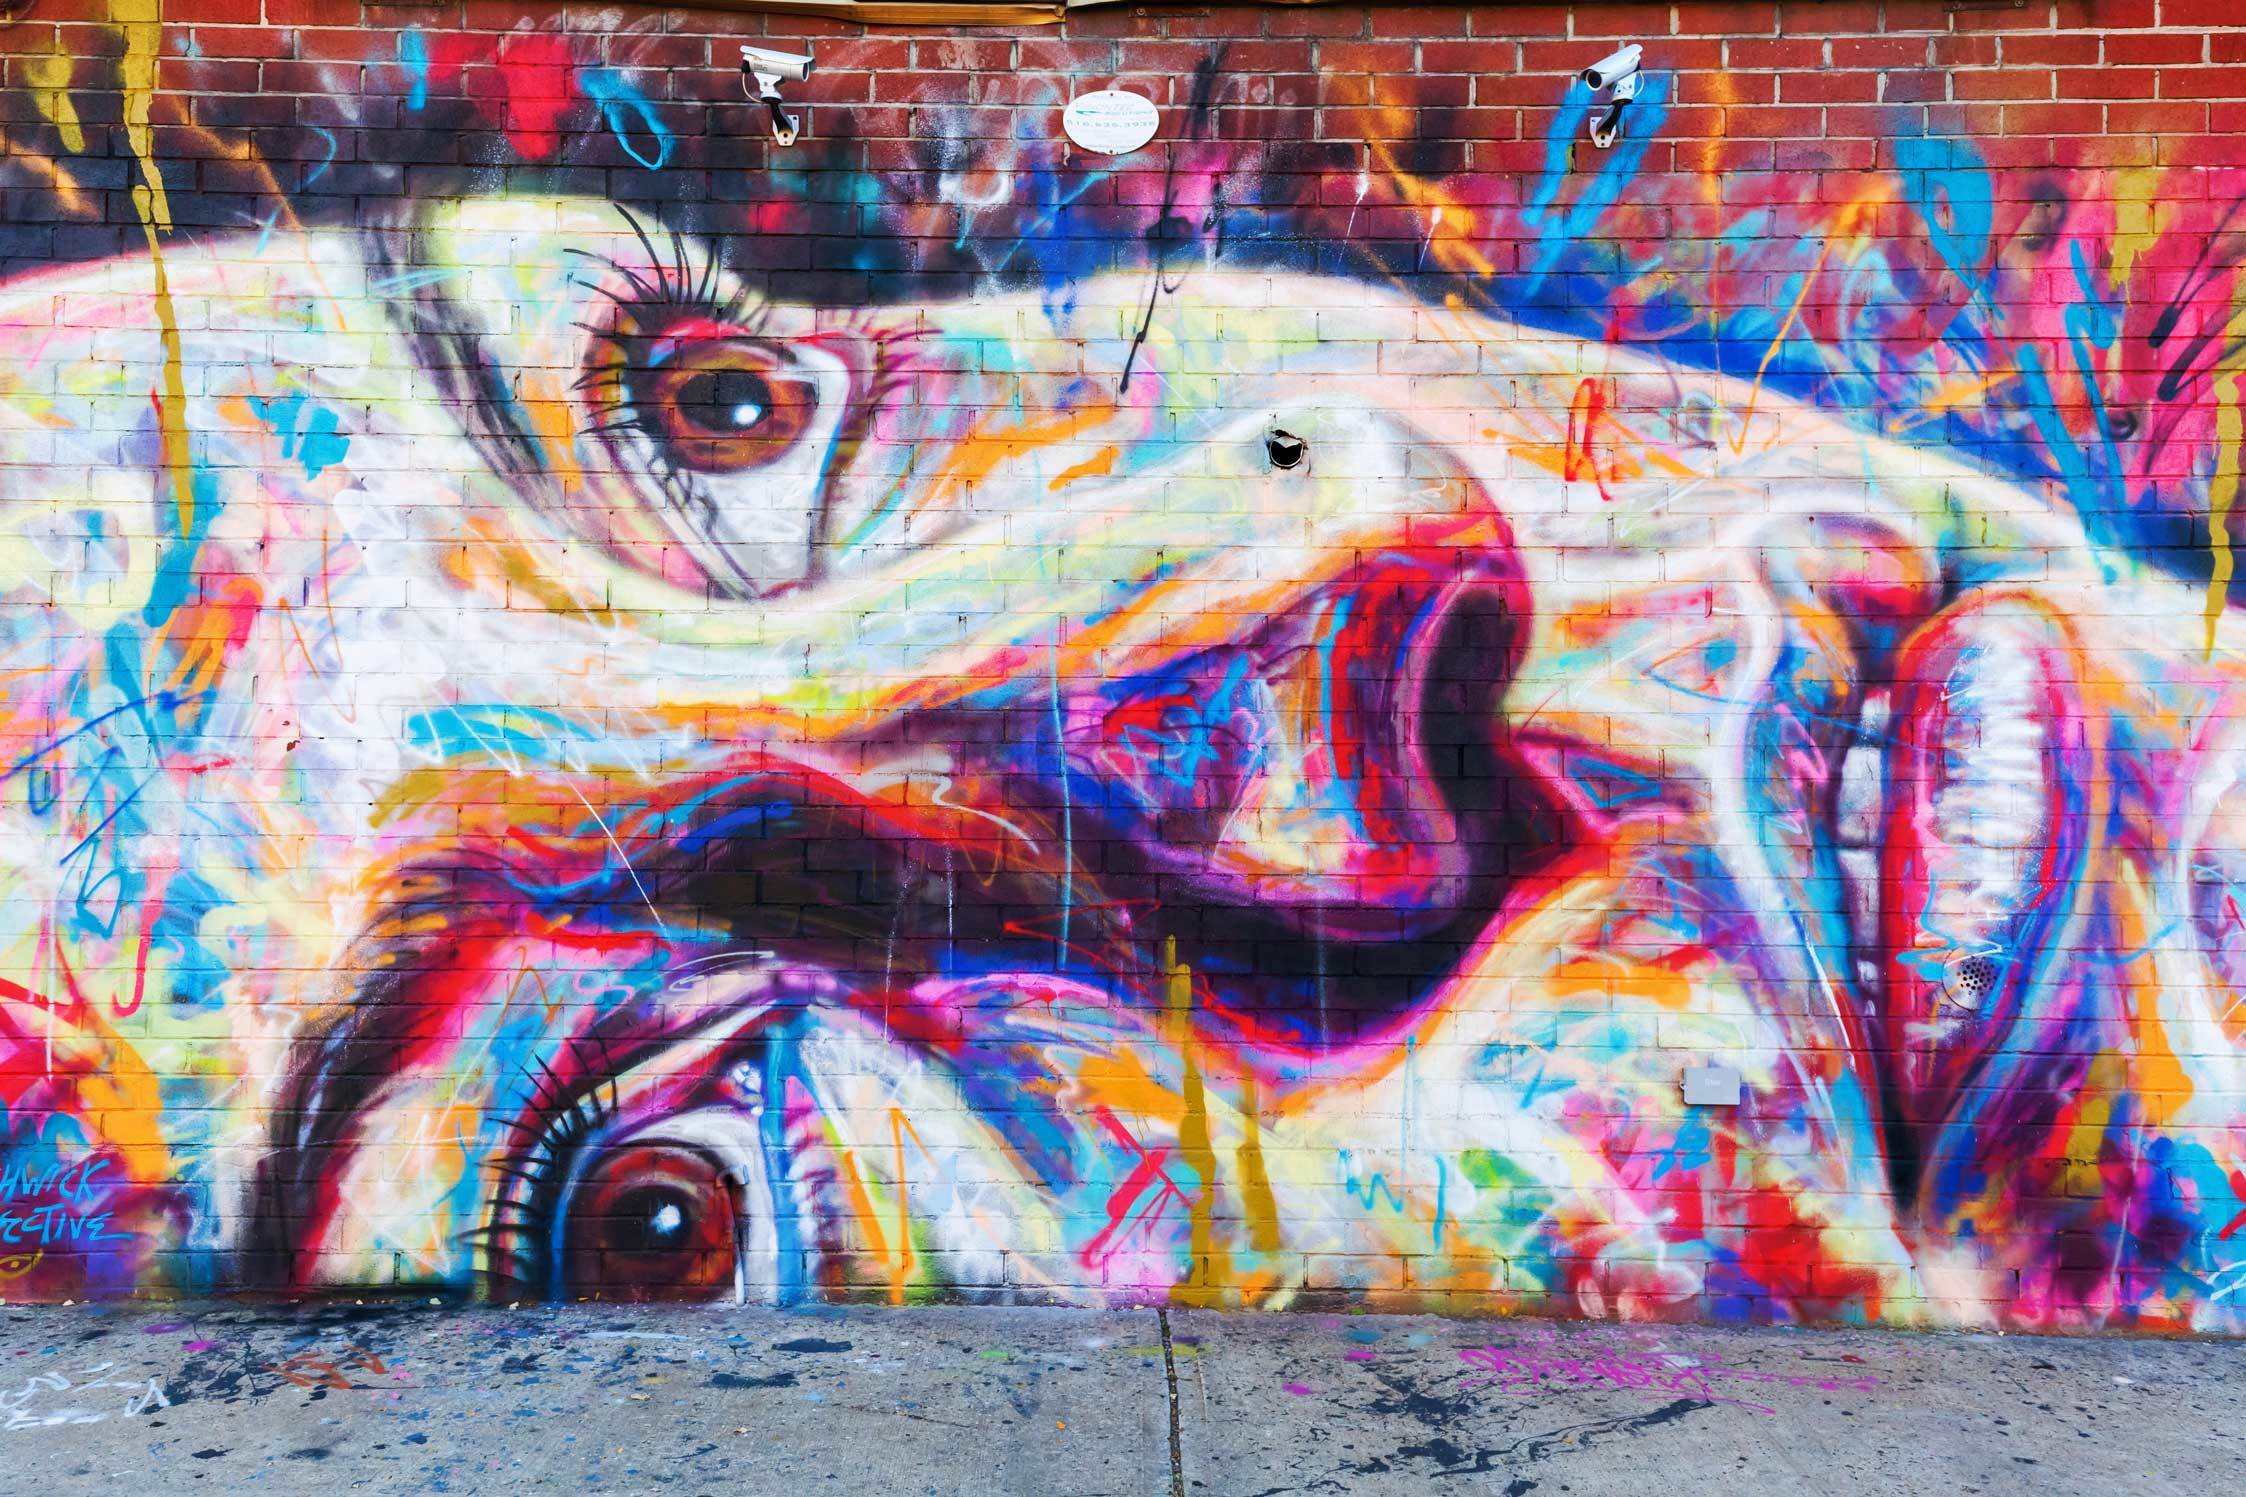 Colourful mural of a face on the side of a brick building in NYC